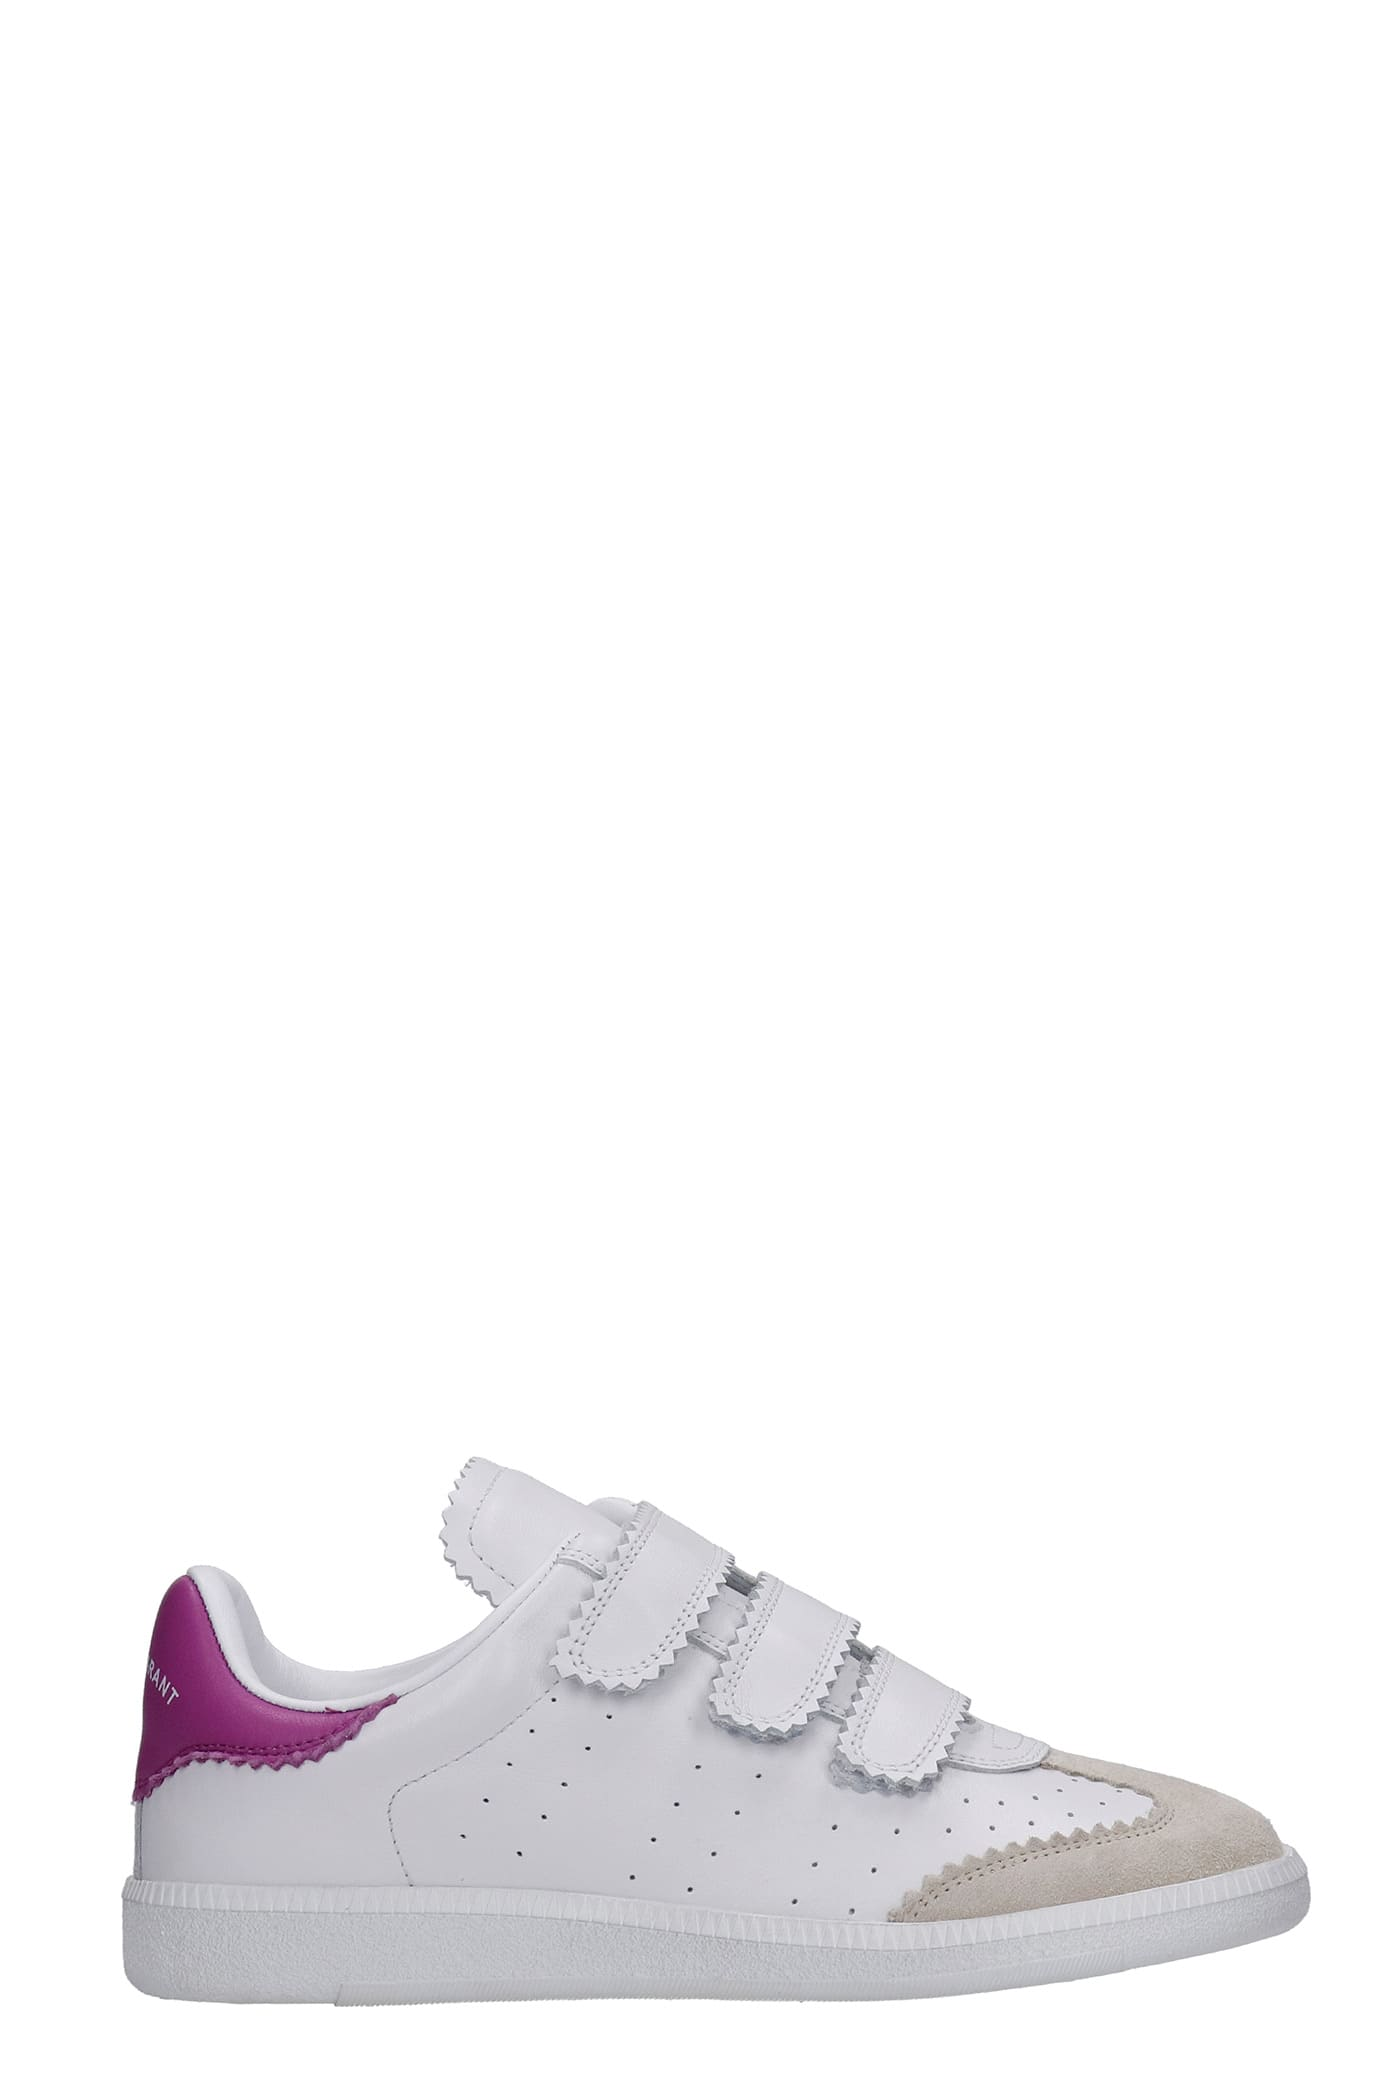 Isabel Marant Beth Sneakers In White Suede And Leather